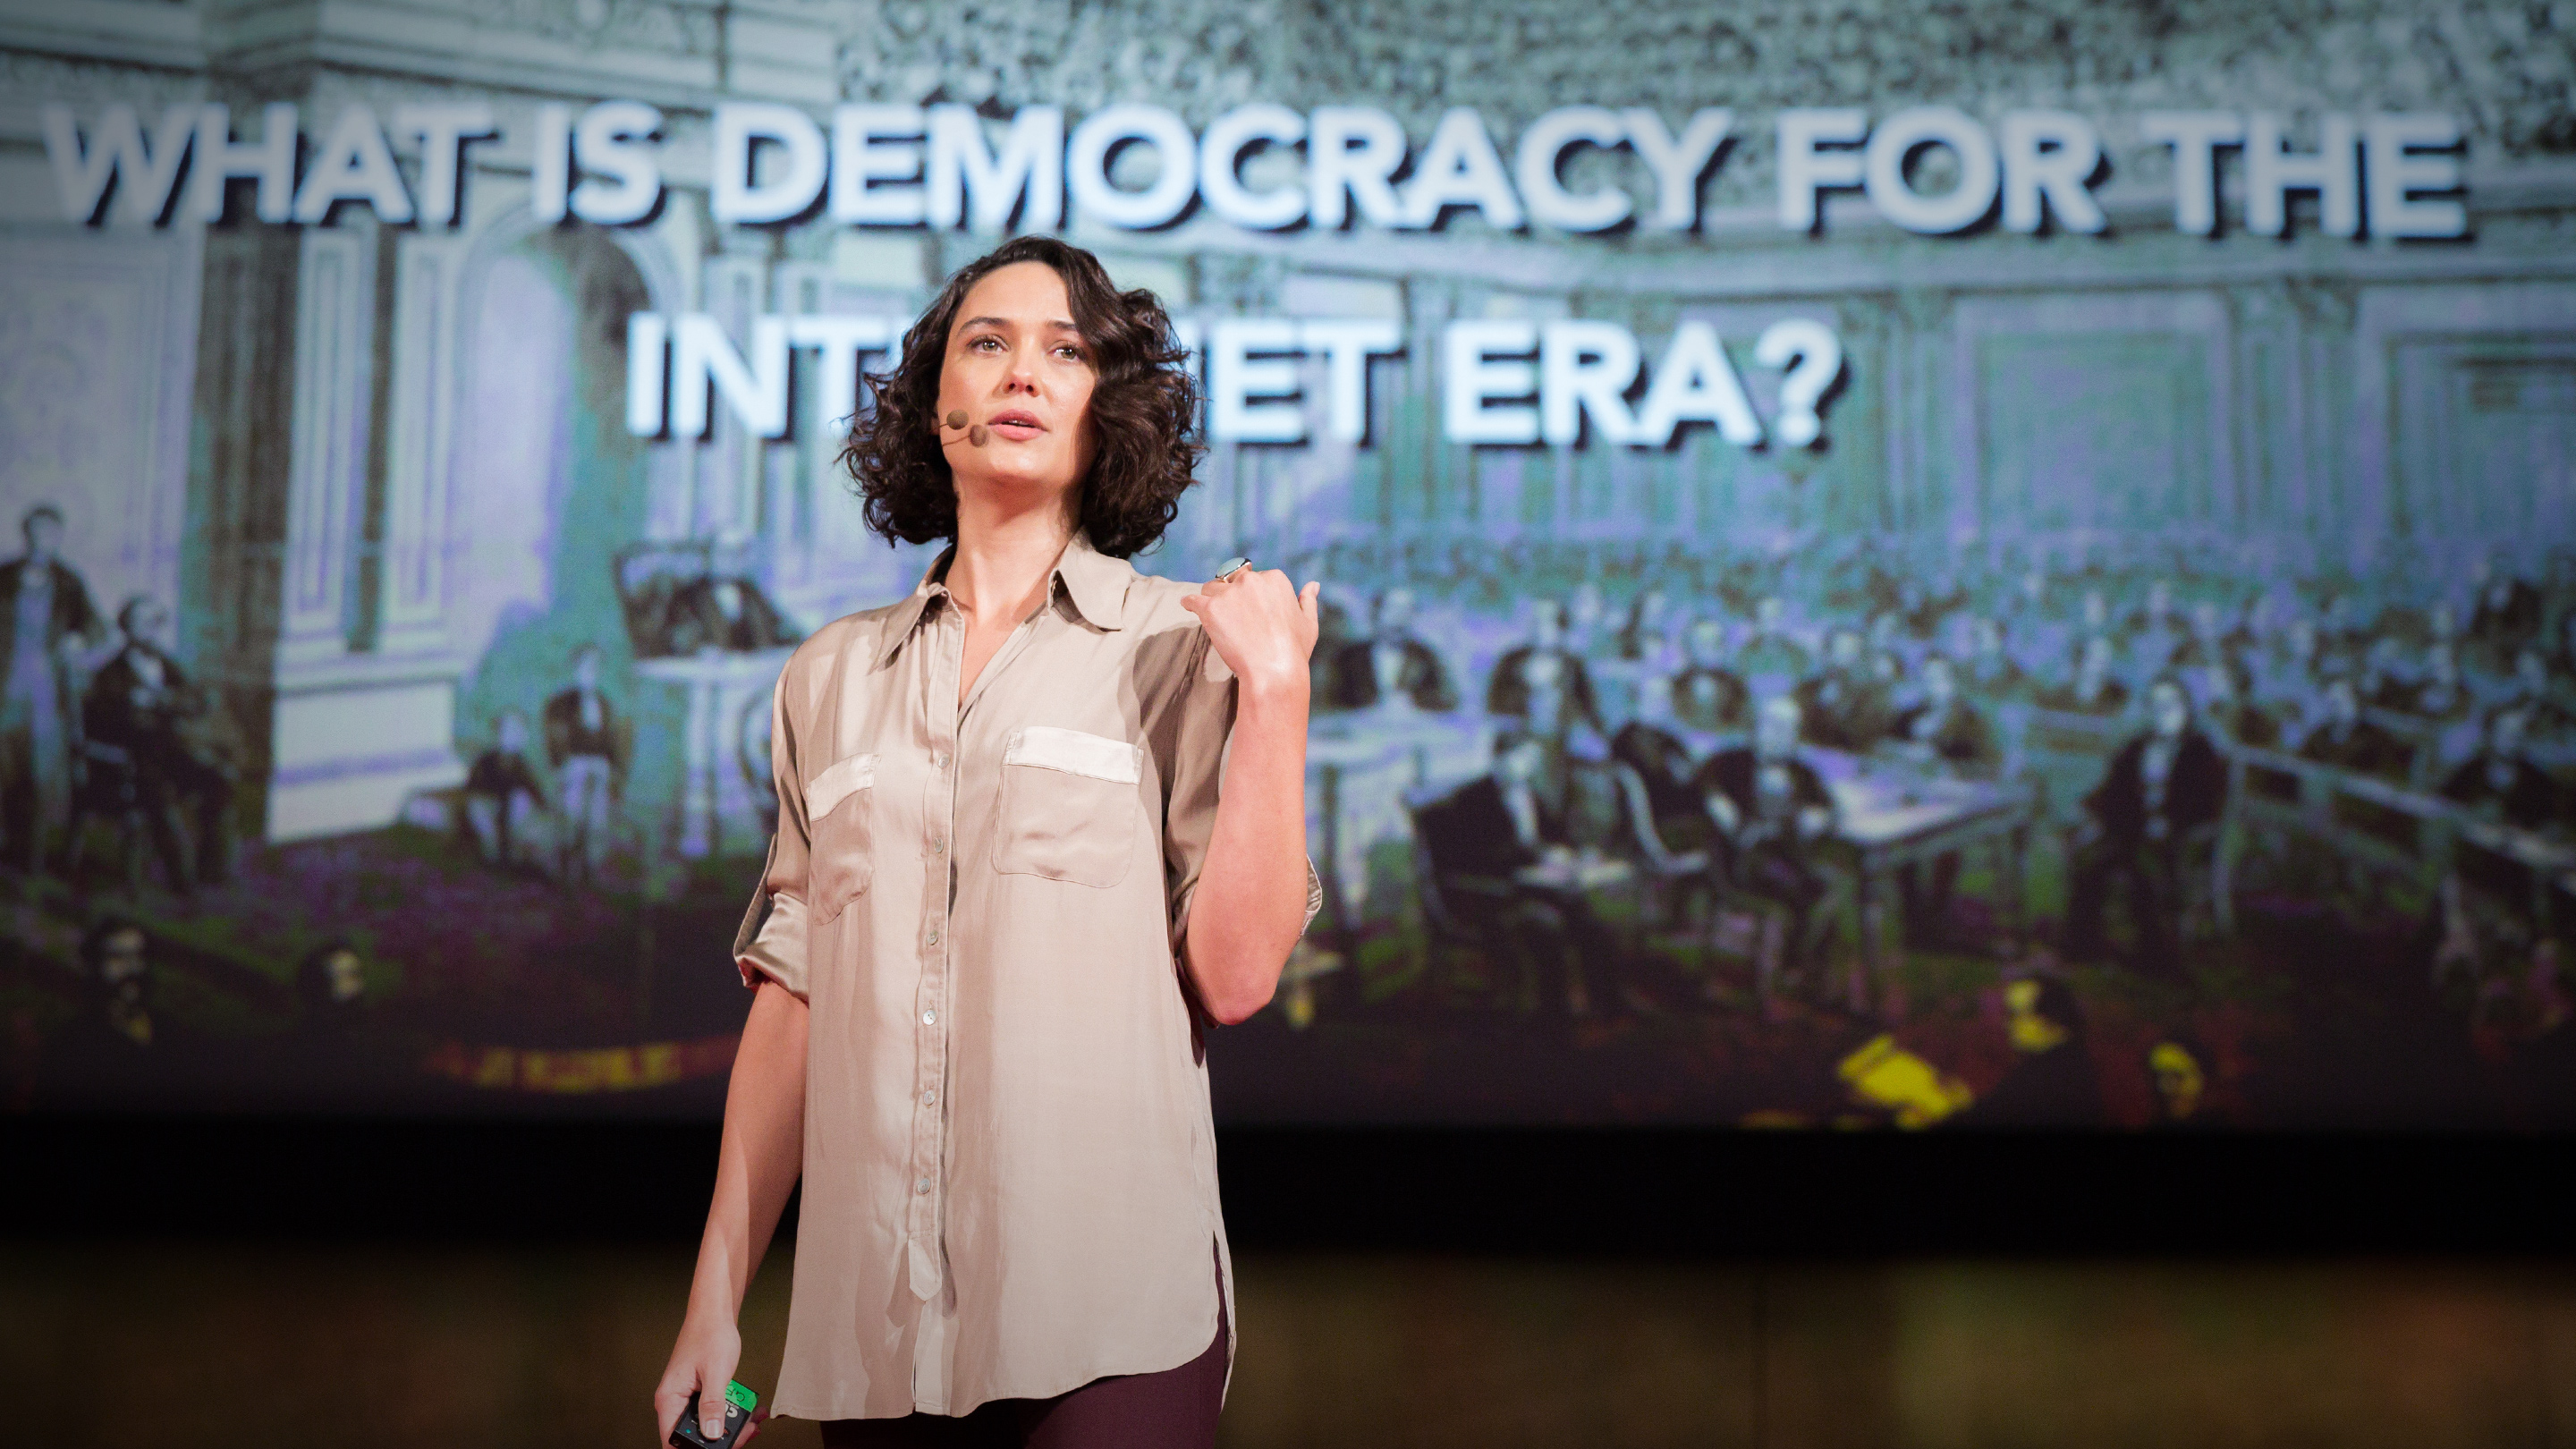 Pia Mancini: How to upgrade democracy for the Internet era thumbnail